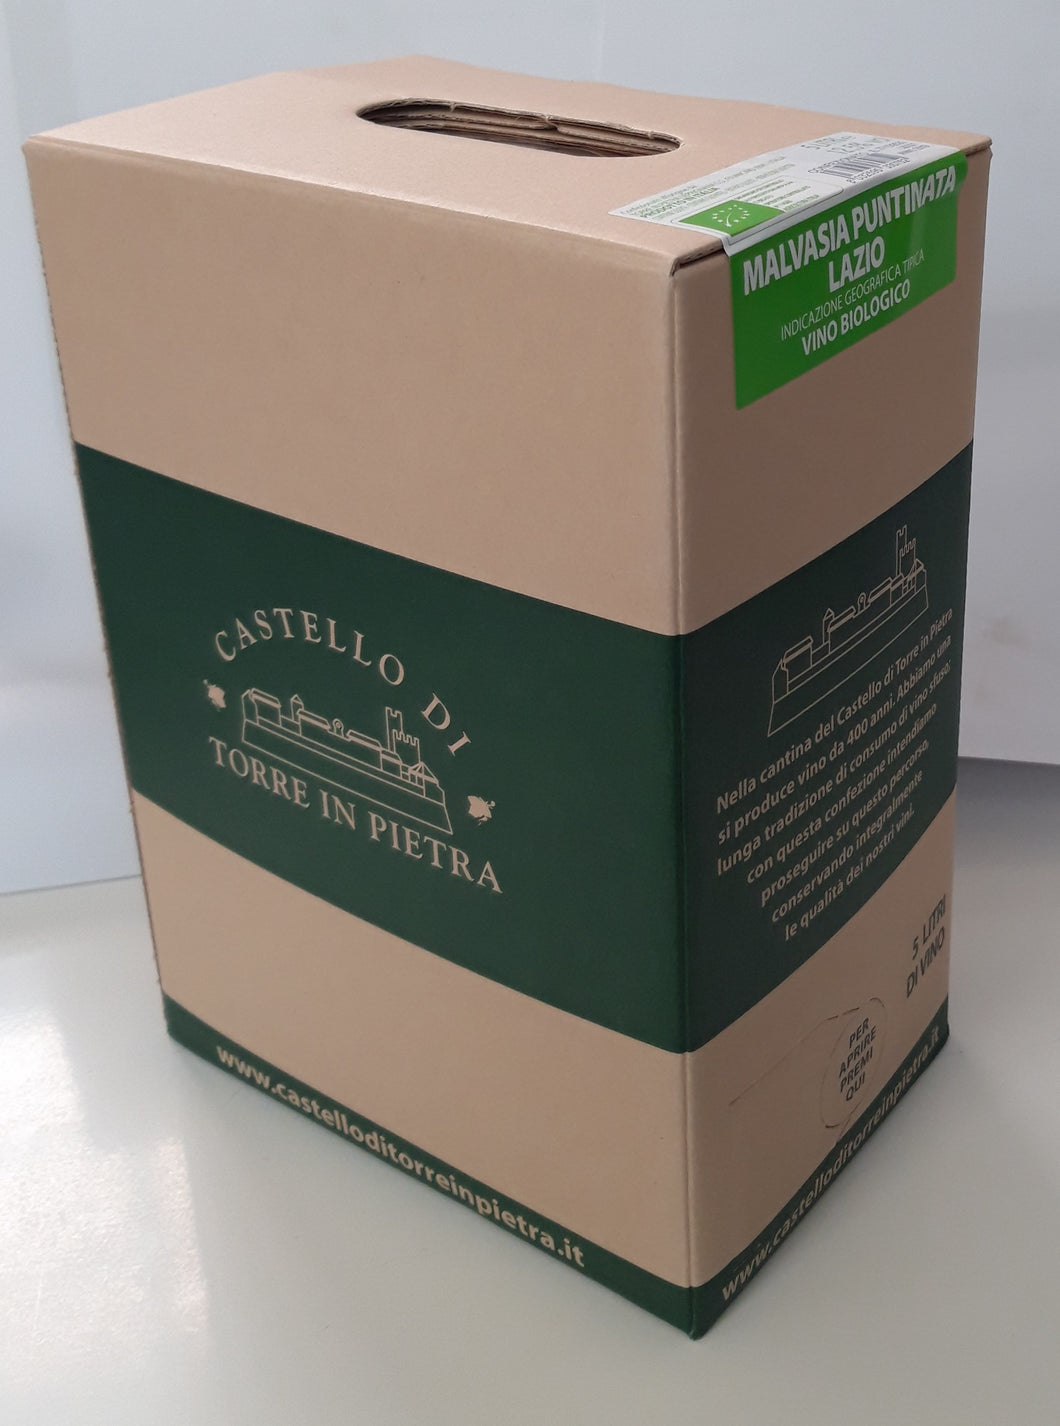 Bag in Box (5l) - Malvasia Puntinata IGT Lazio Bio